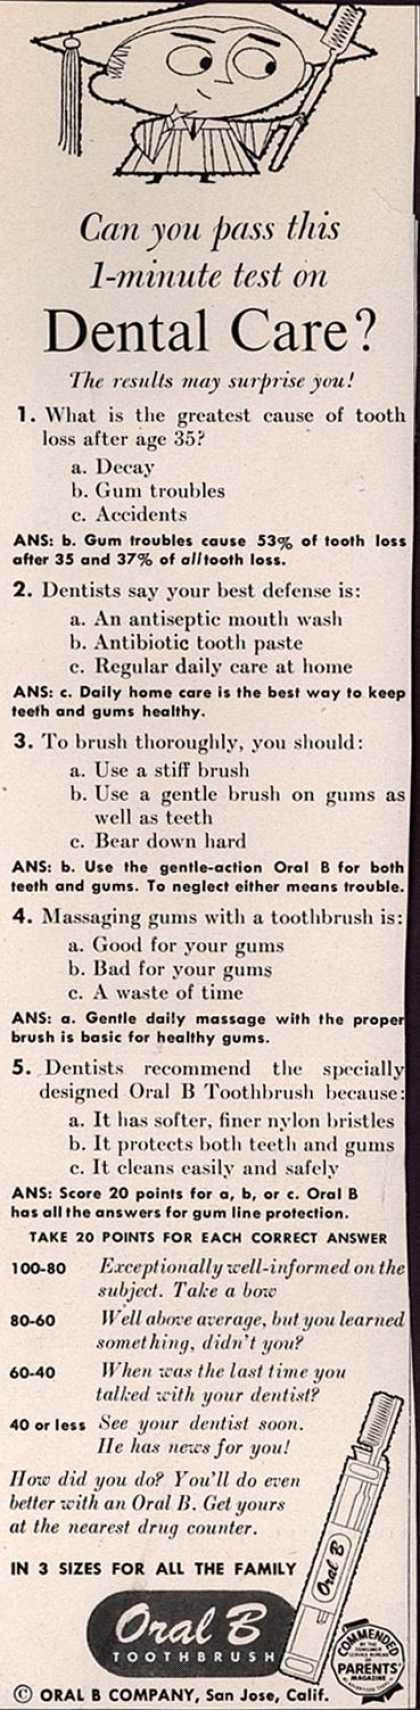 Oral B Company's Oral B Toothbrush – Can you pass this 1-minute test on Dental Care? (1957)